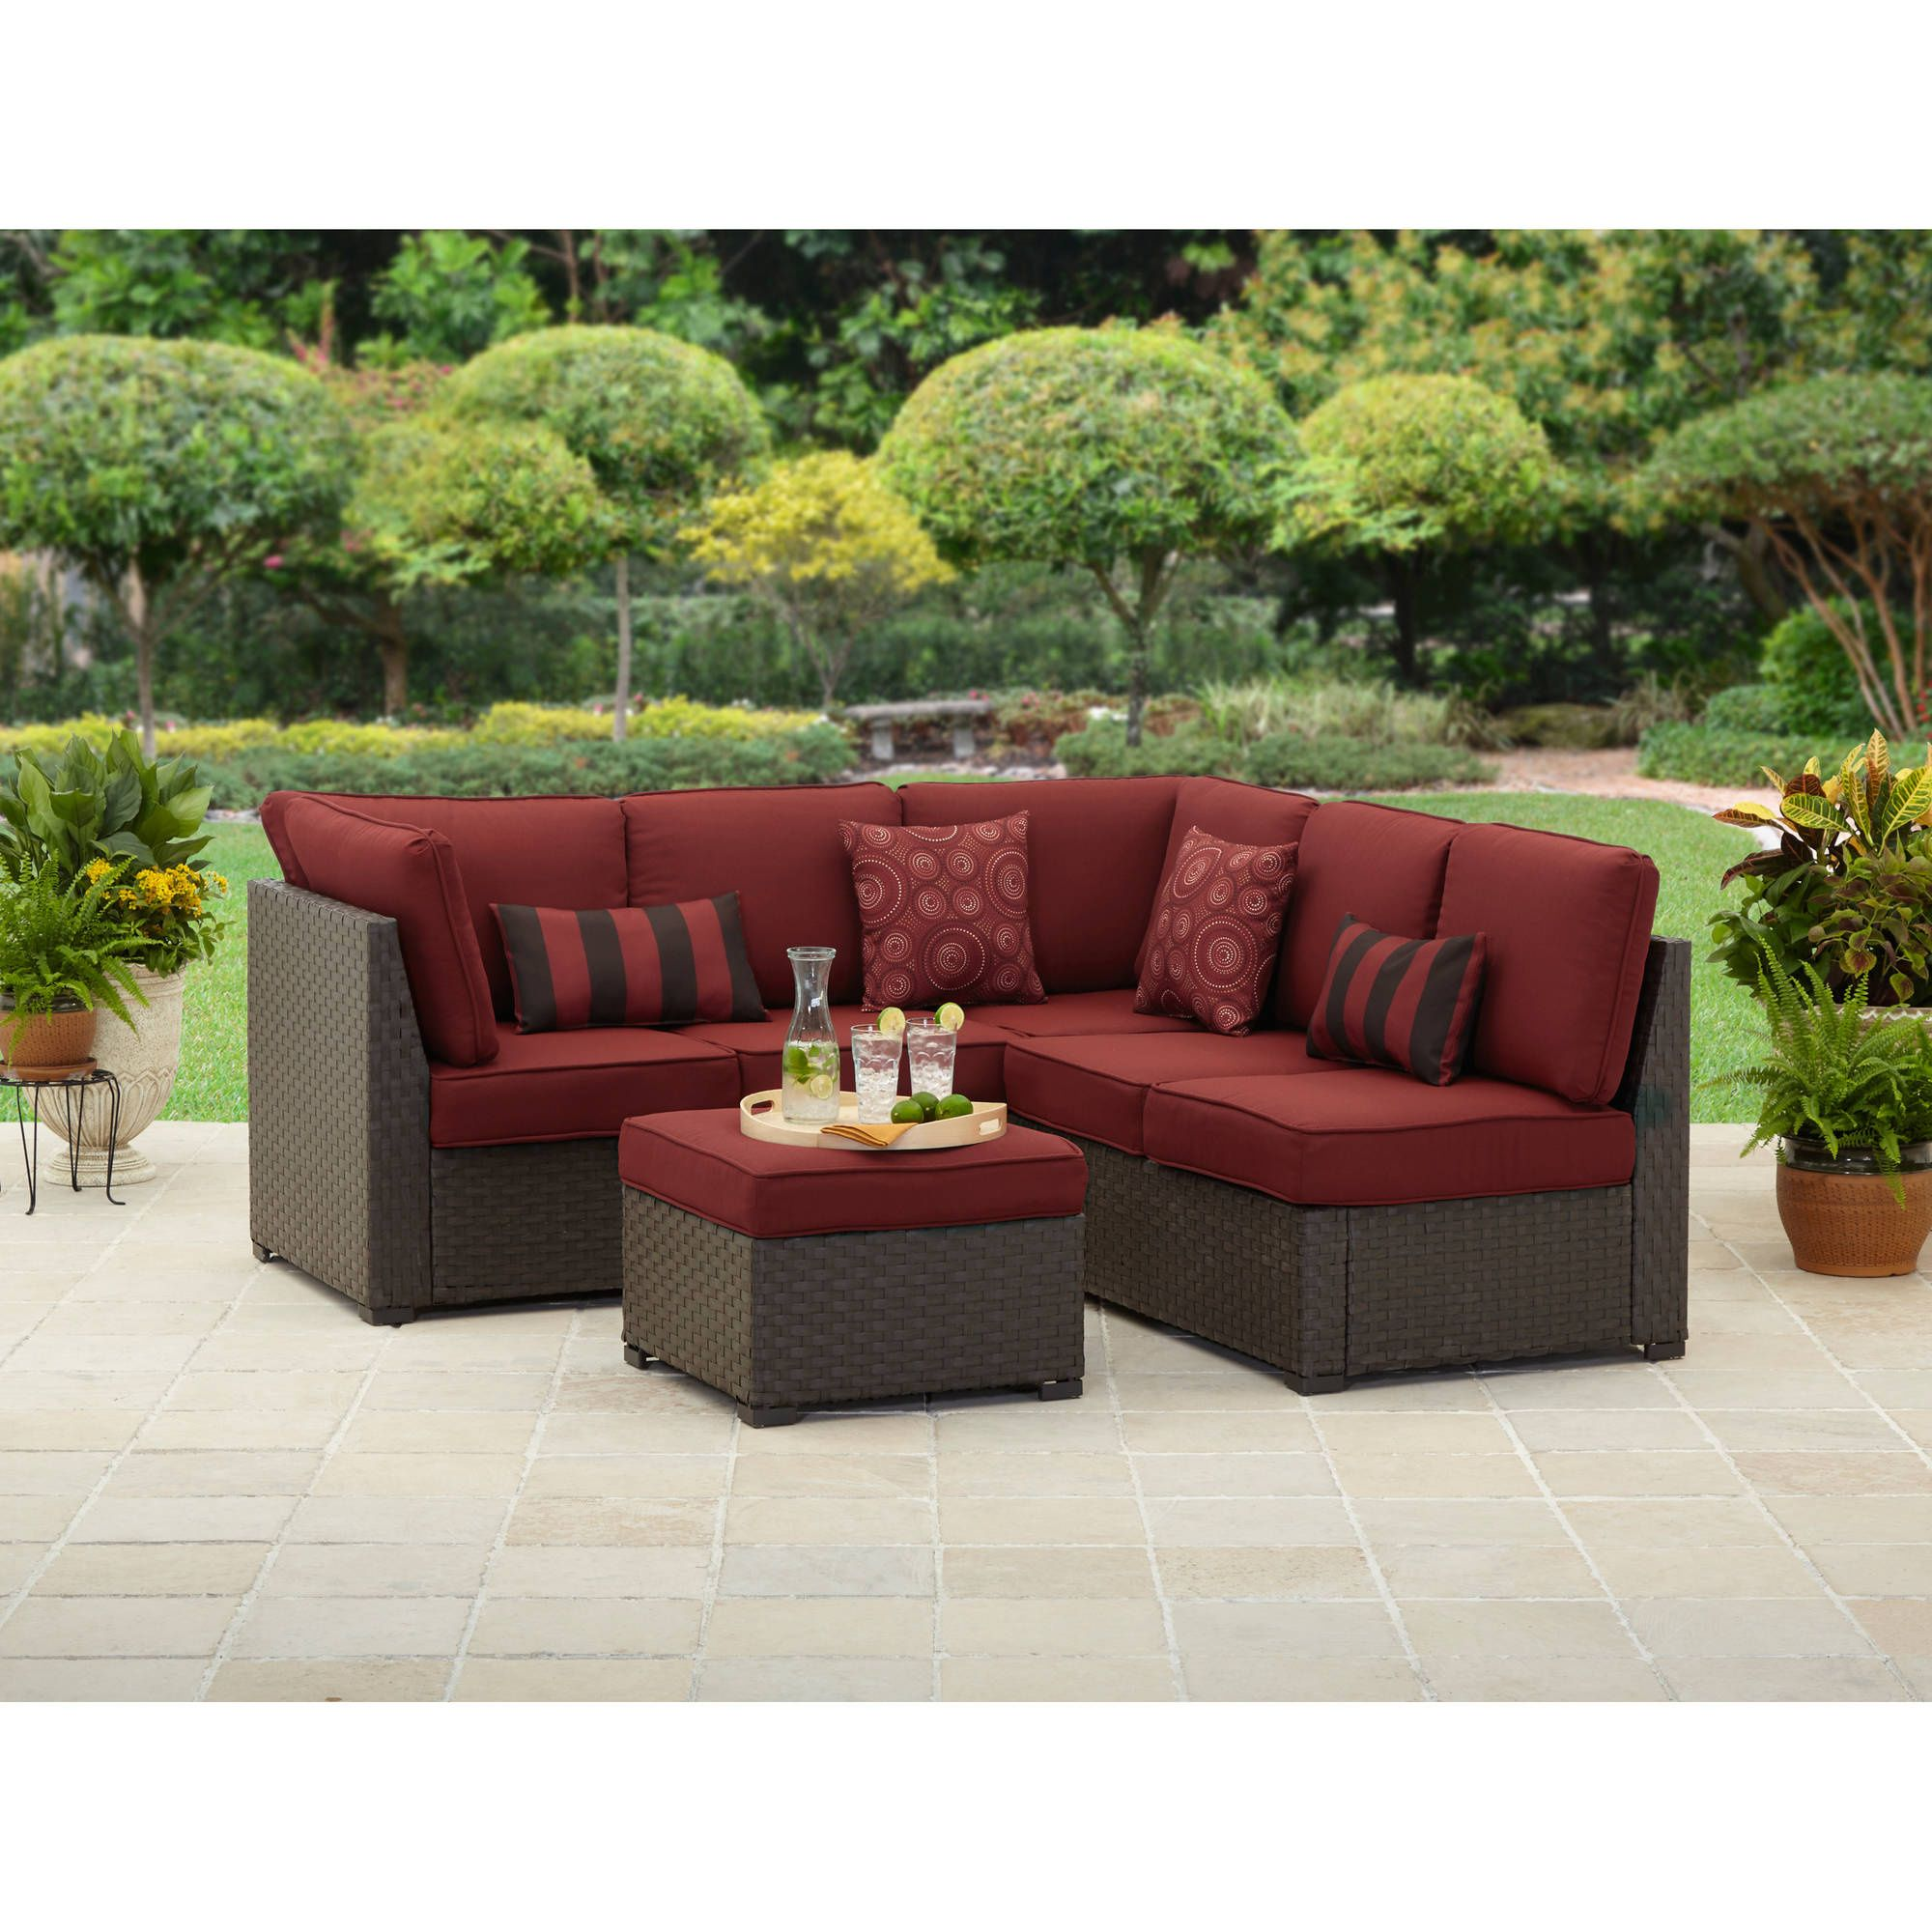 Walmart Clearance Outdoor Furniture Best Way to Paint Wood